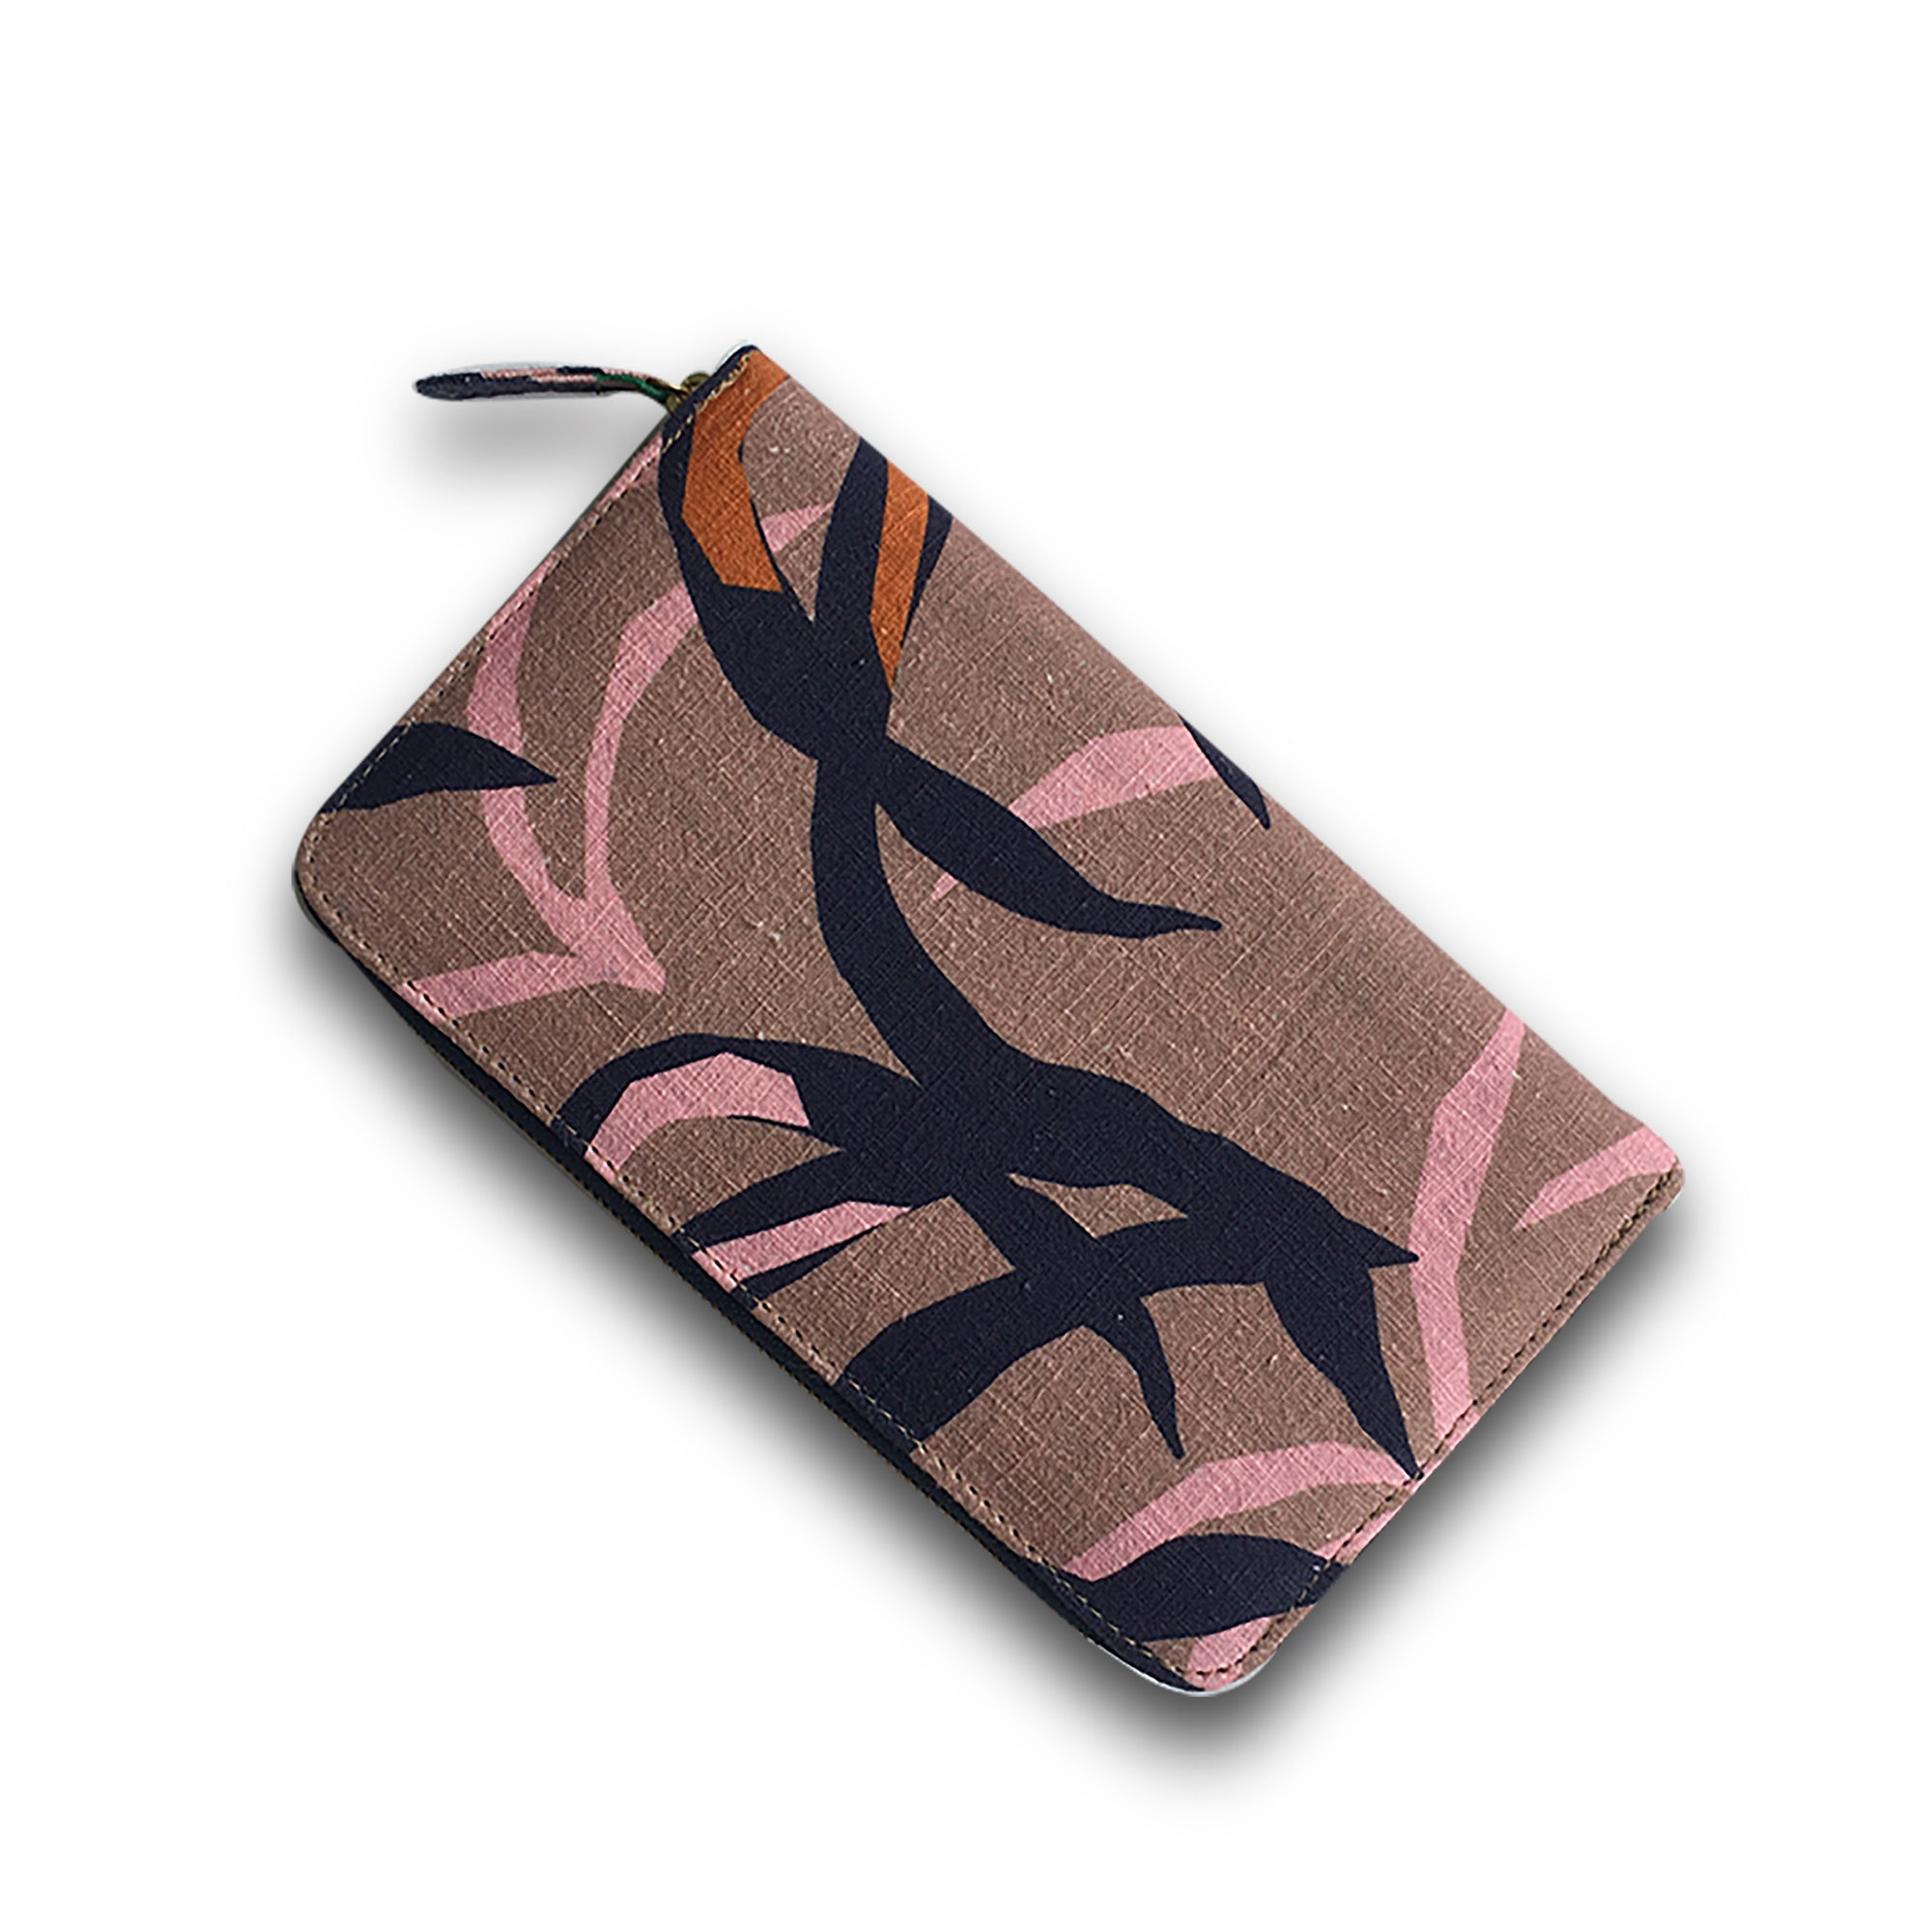 TRAVELLING TREV CLUTCH - PENIDA PALM PRINT (BLUSH)